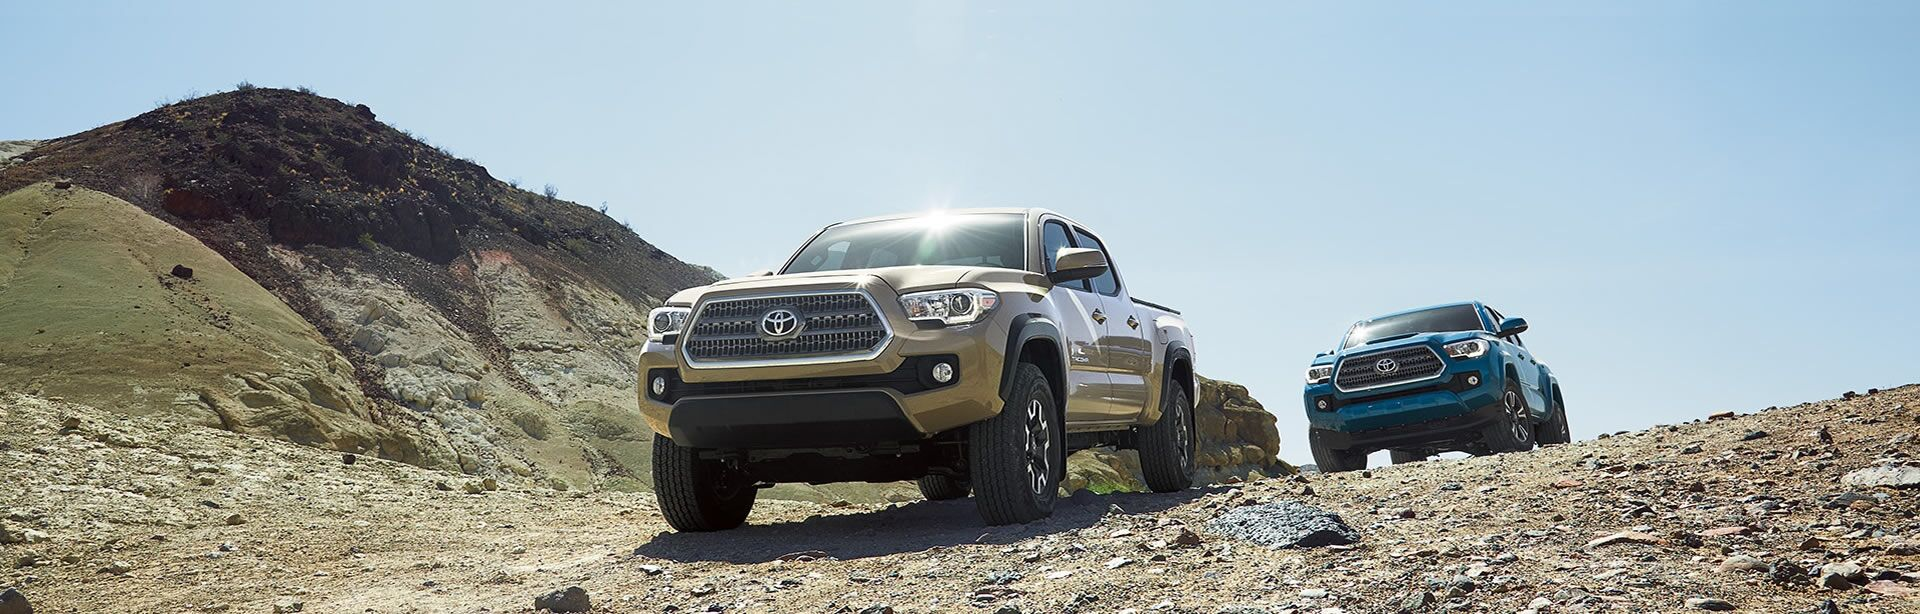 Toyota Tundra at York's of Houlton Toyota